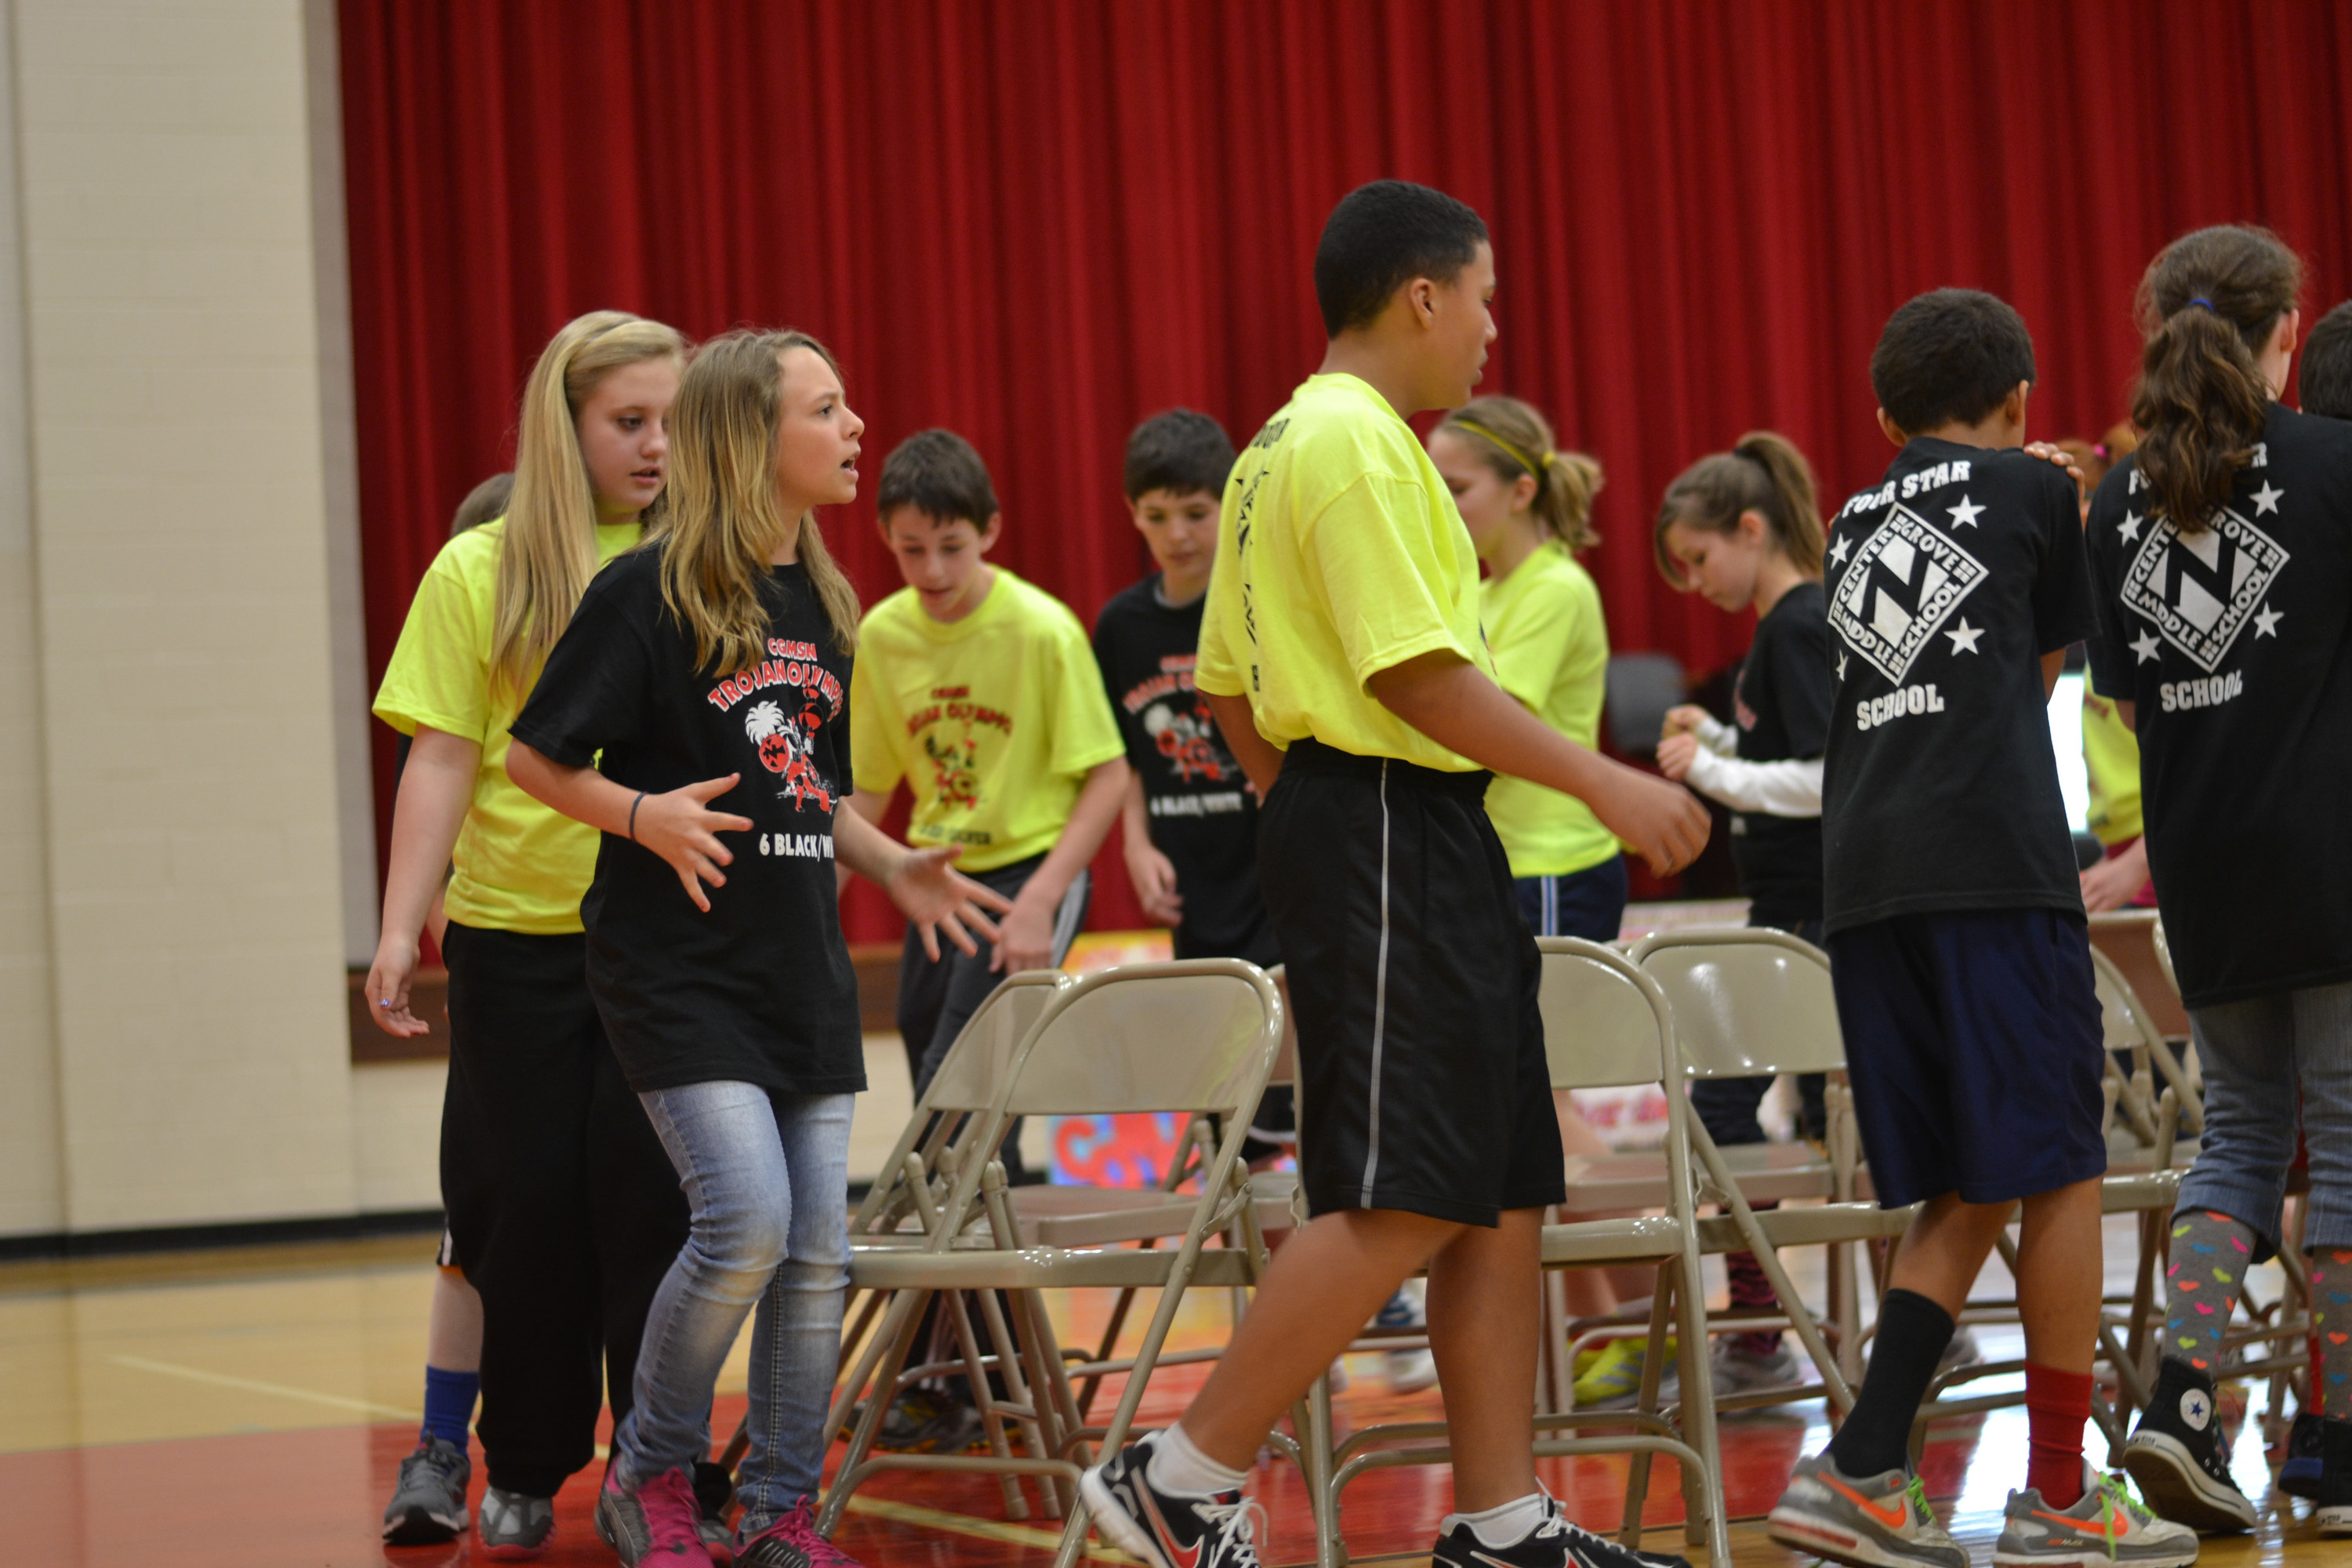 People playing musical chairs